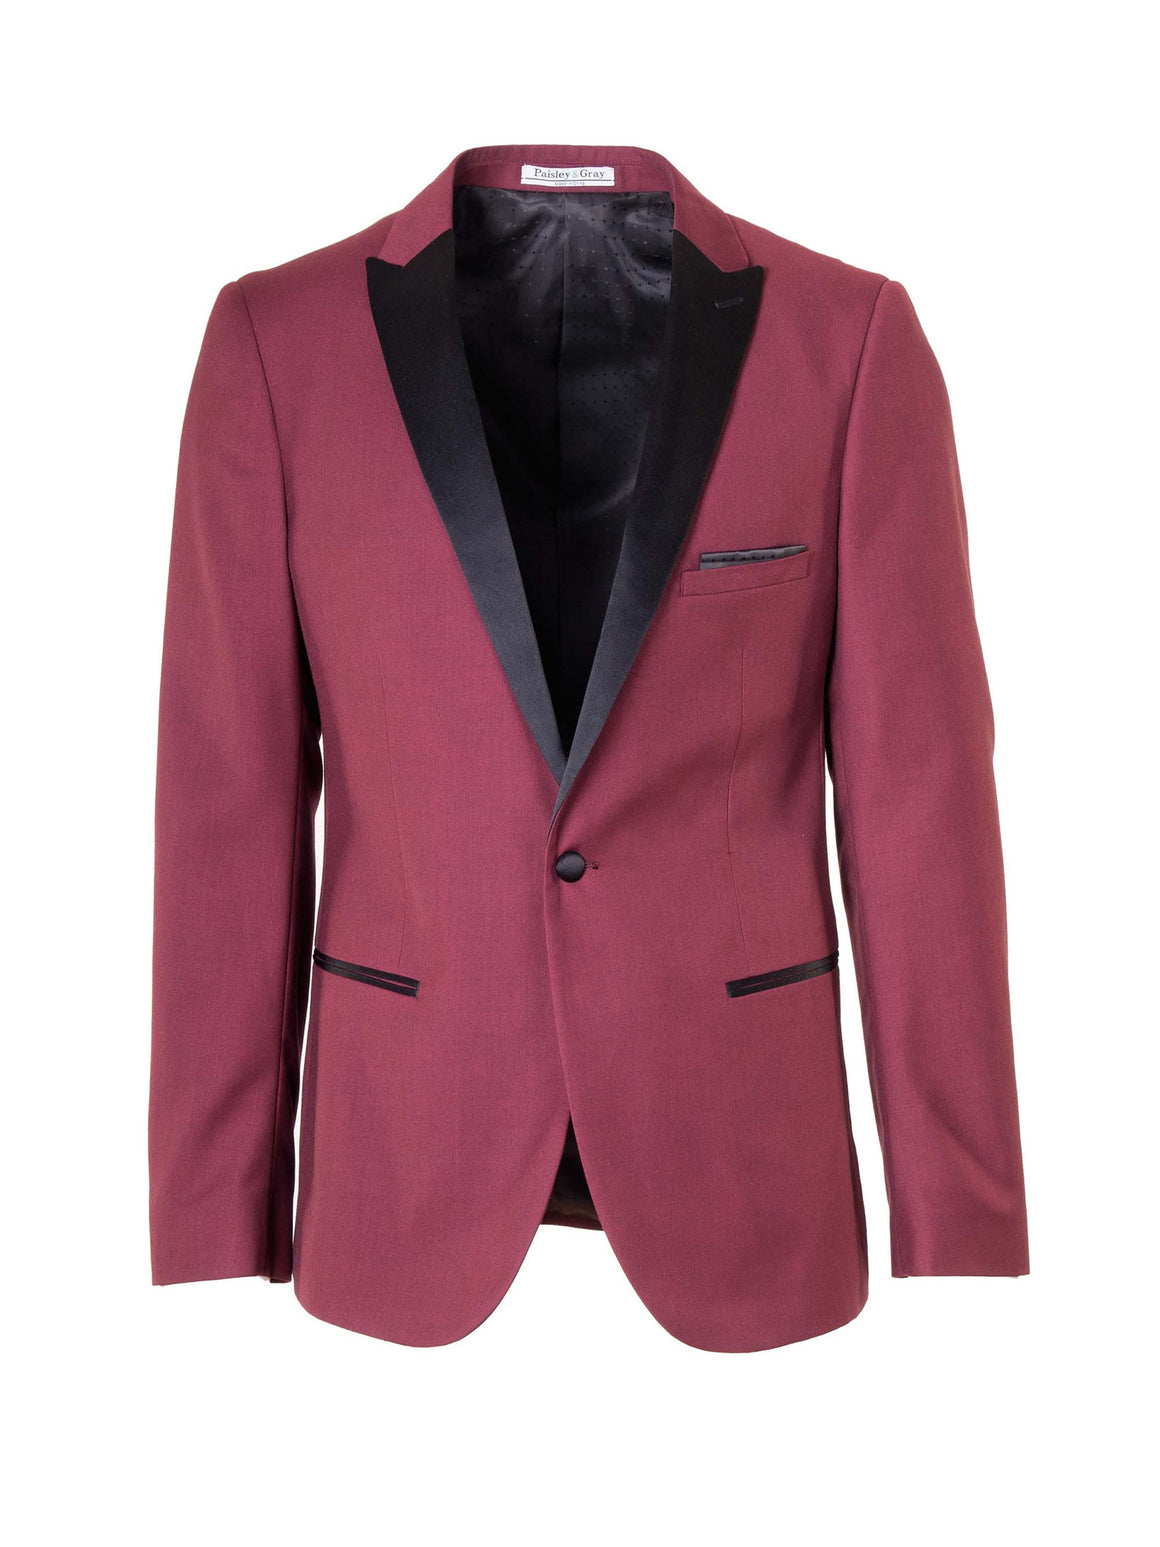 Grosvenor Peak Dinner Jacket - Maroon